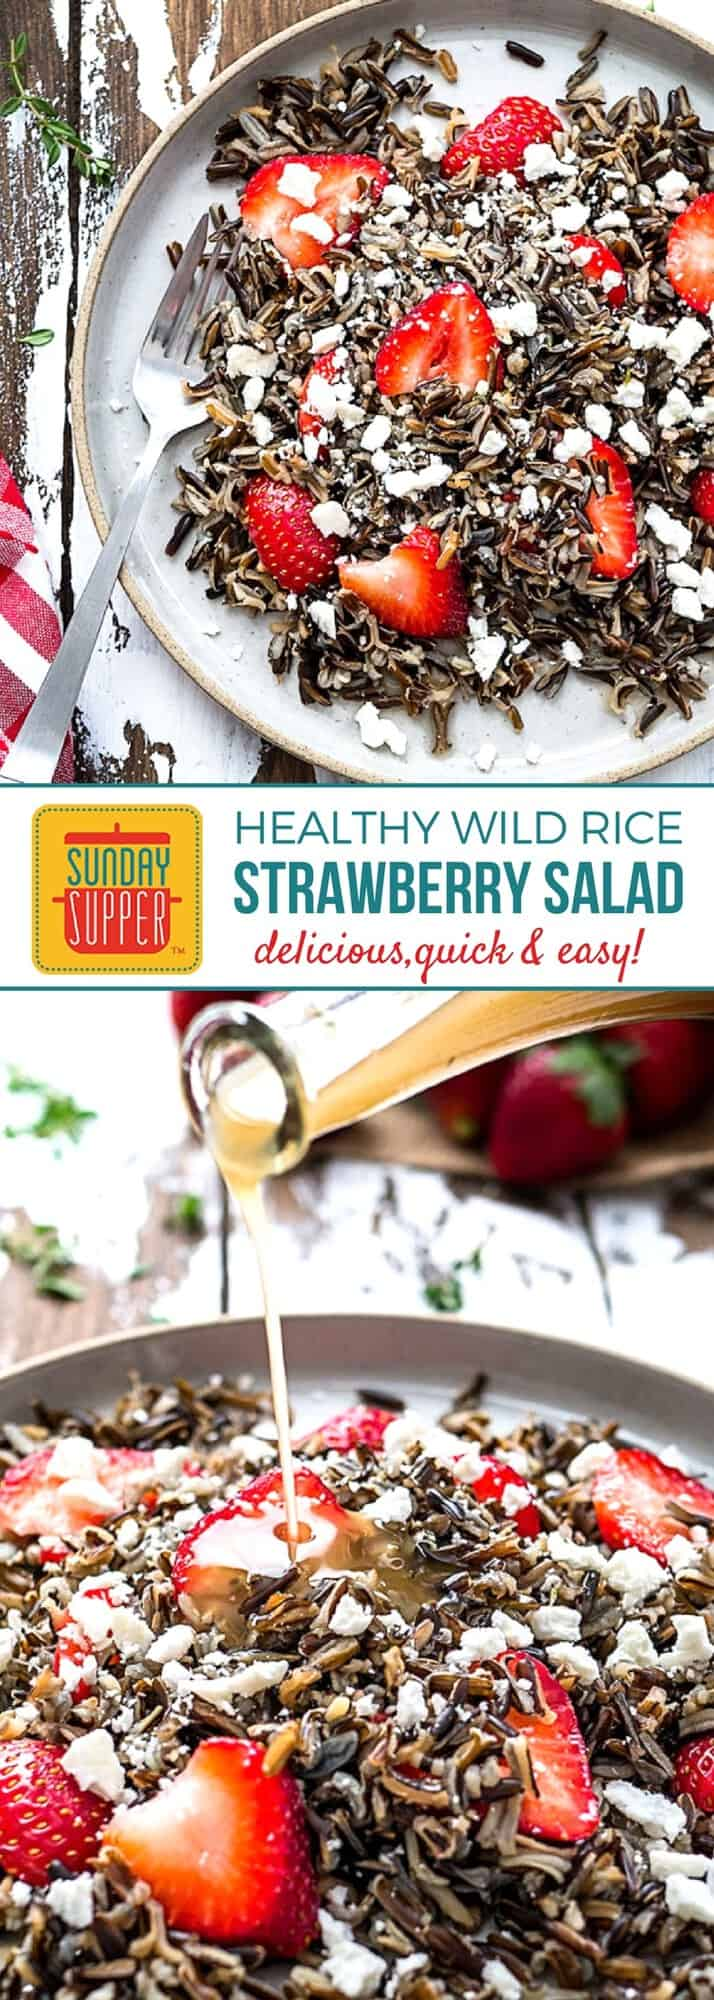 Loaded with good-for-you stuff, our hearty Wild Rice Salad is quick and easy to make for a wholesome lunch or dinner. Featuring one of winter's brightest stars on the produce scene, Florida Strawberries, this Healthy Family Recipe is not only good for you, but it is beautiful and delicious too! #SundaySupper #FLStrawberry #HealthyRecipes #StrawberryRecipes #SaladRecipes #WildRiceSalad